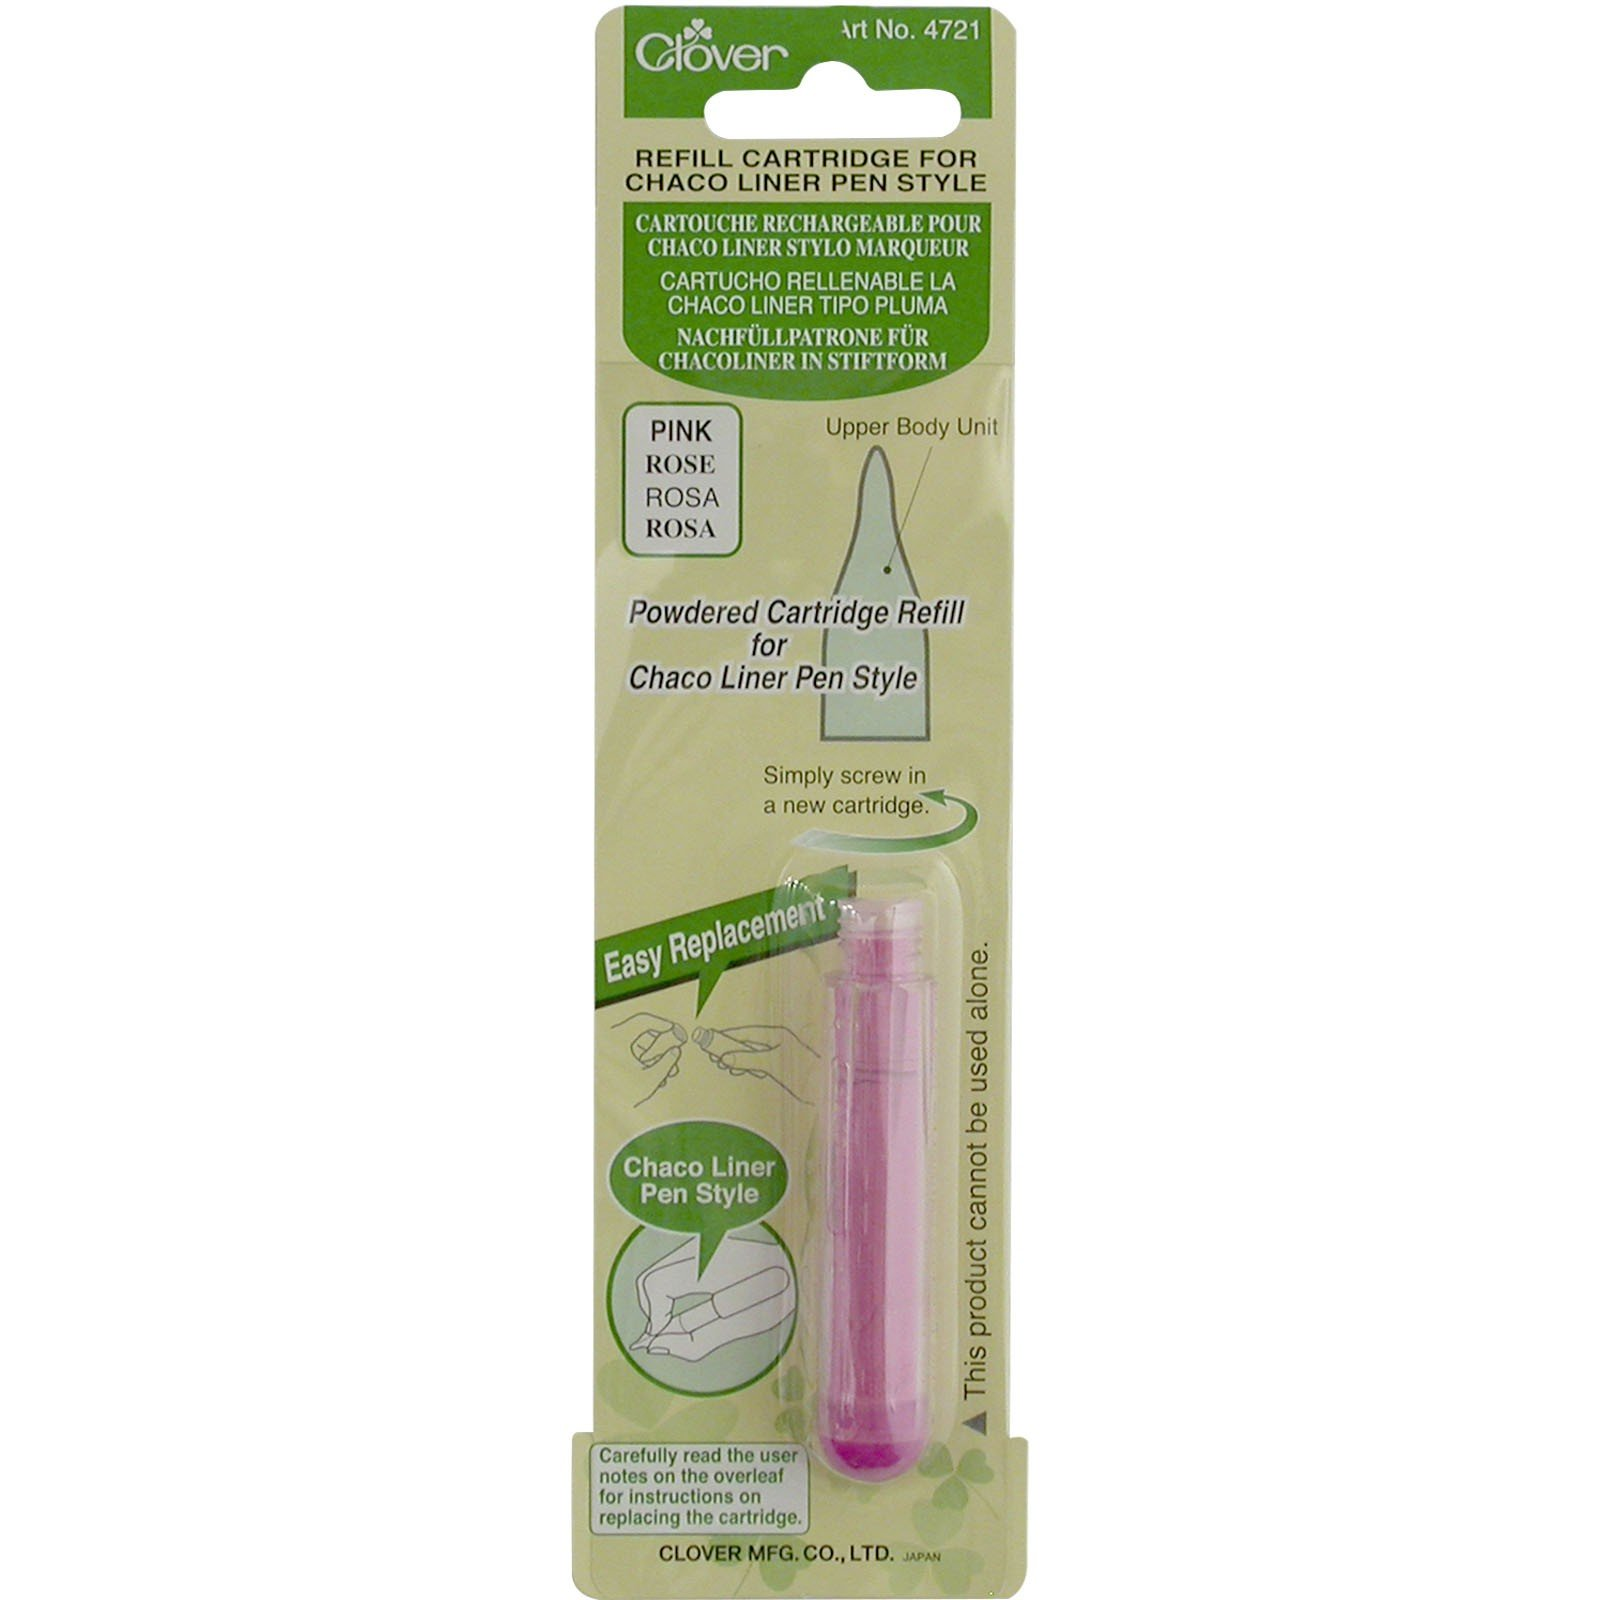 Clover Chaco Liner Pen Chalk Refill Pink